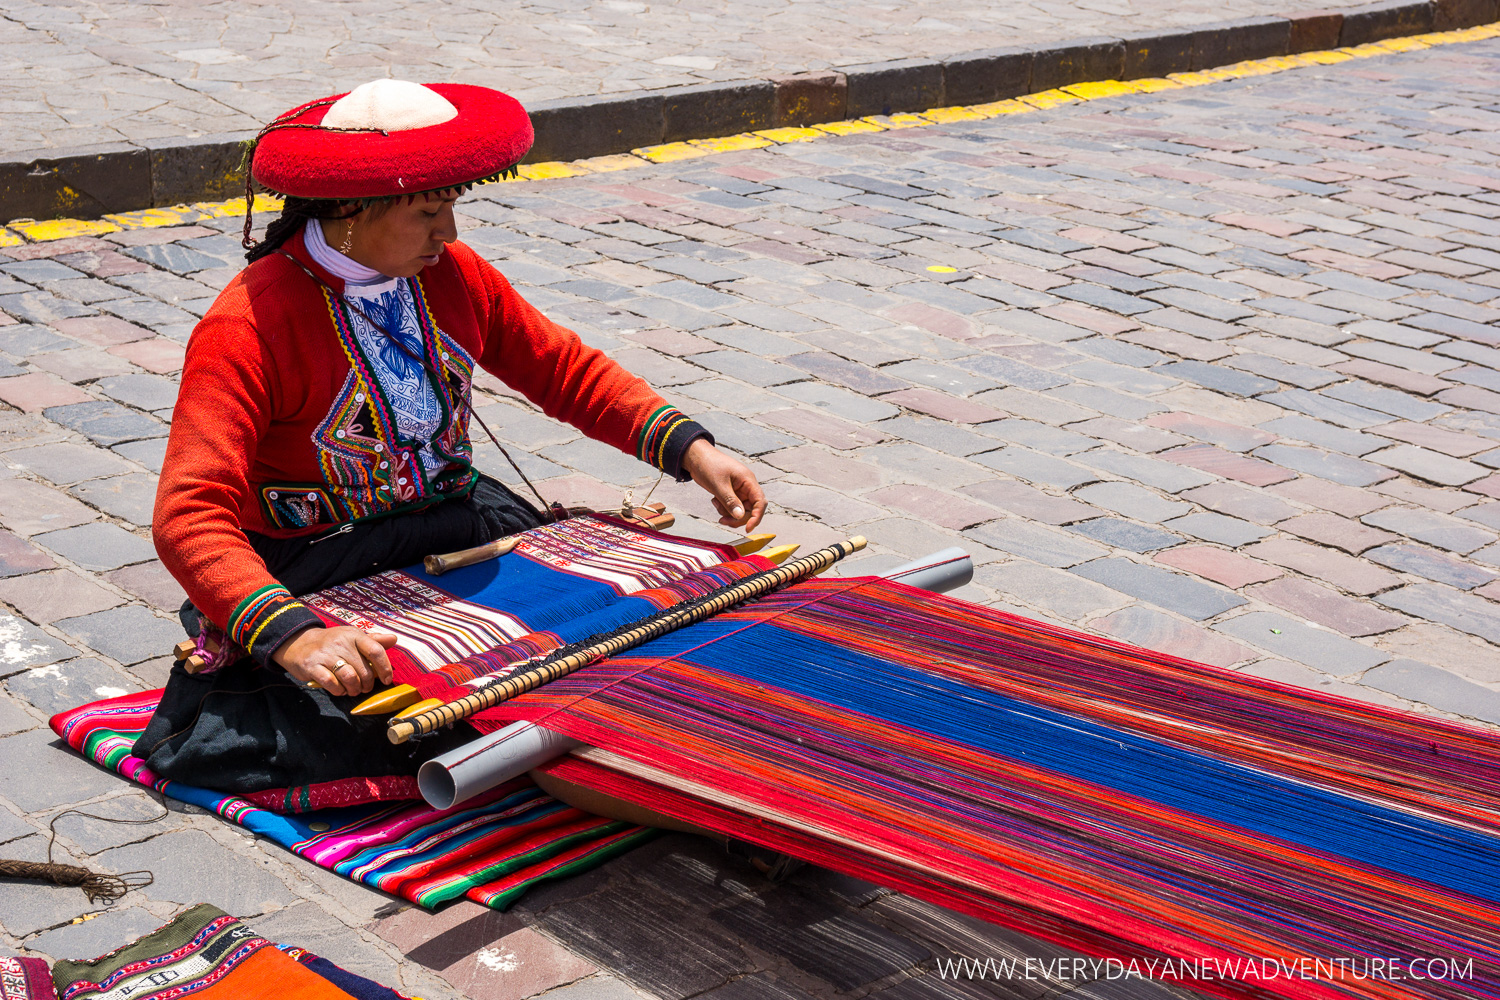 One of the many skilled weavers working in the main square.